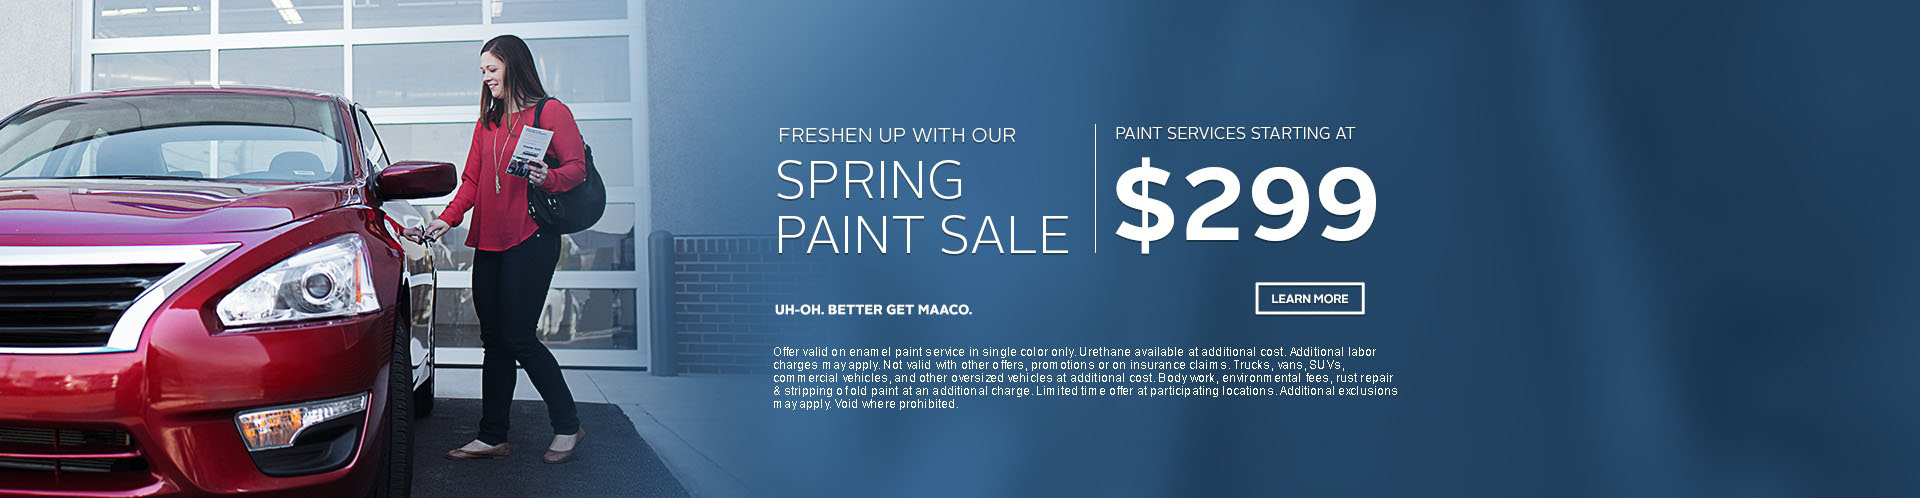 Maaco: Spring Paint Sale Starting at: $299, click Learn More for further details.